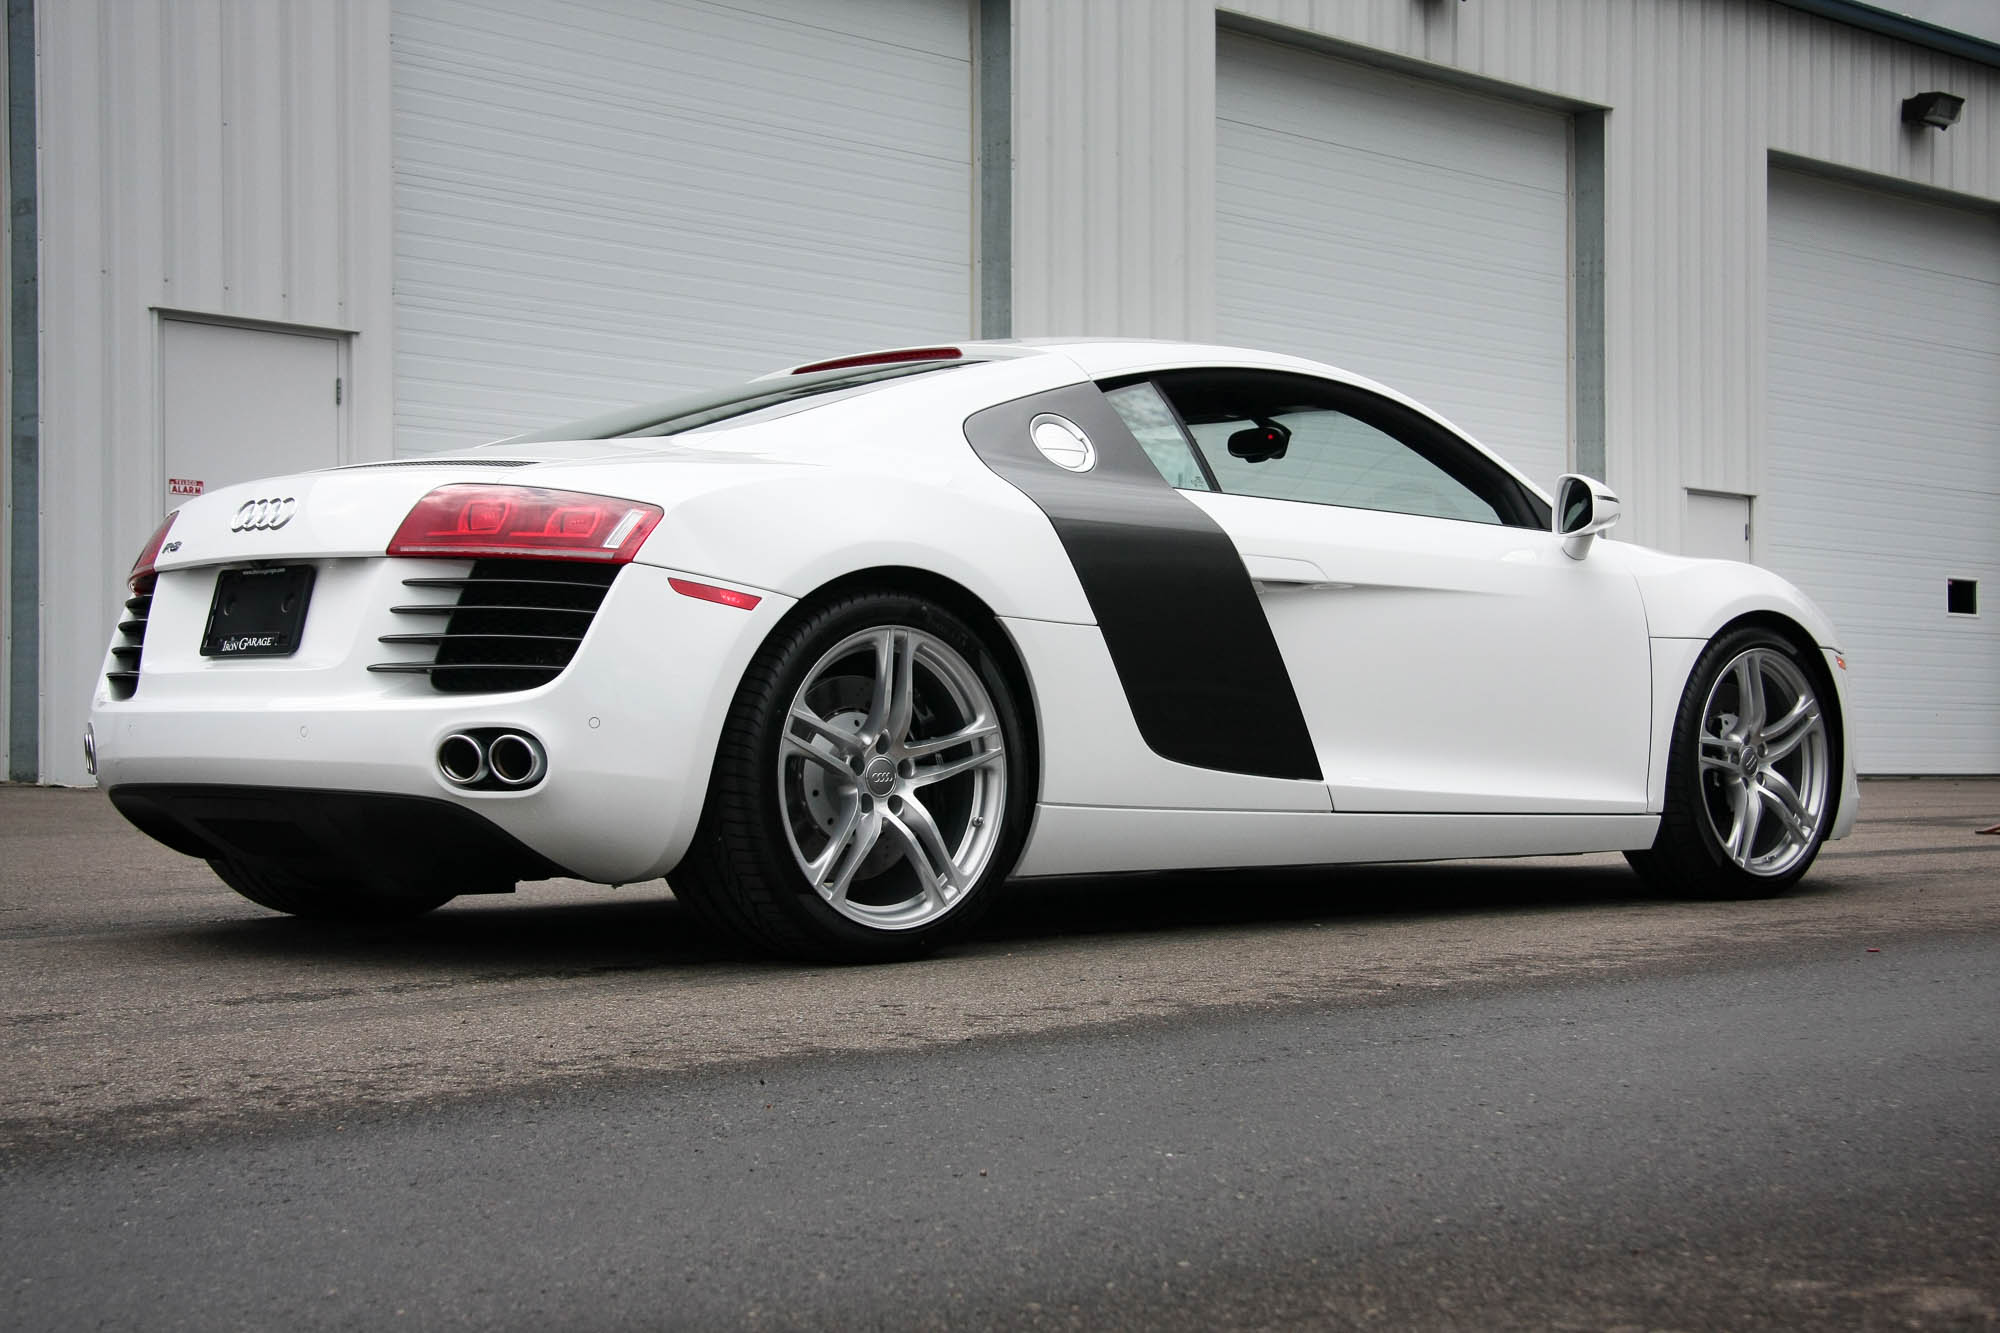 2009 Audi R8 Sold The Iron Garage